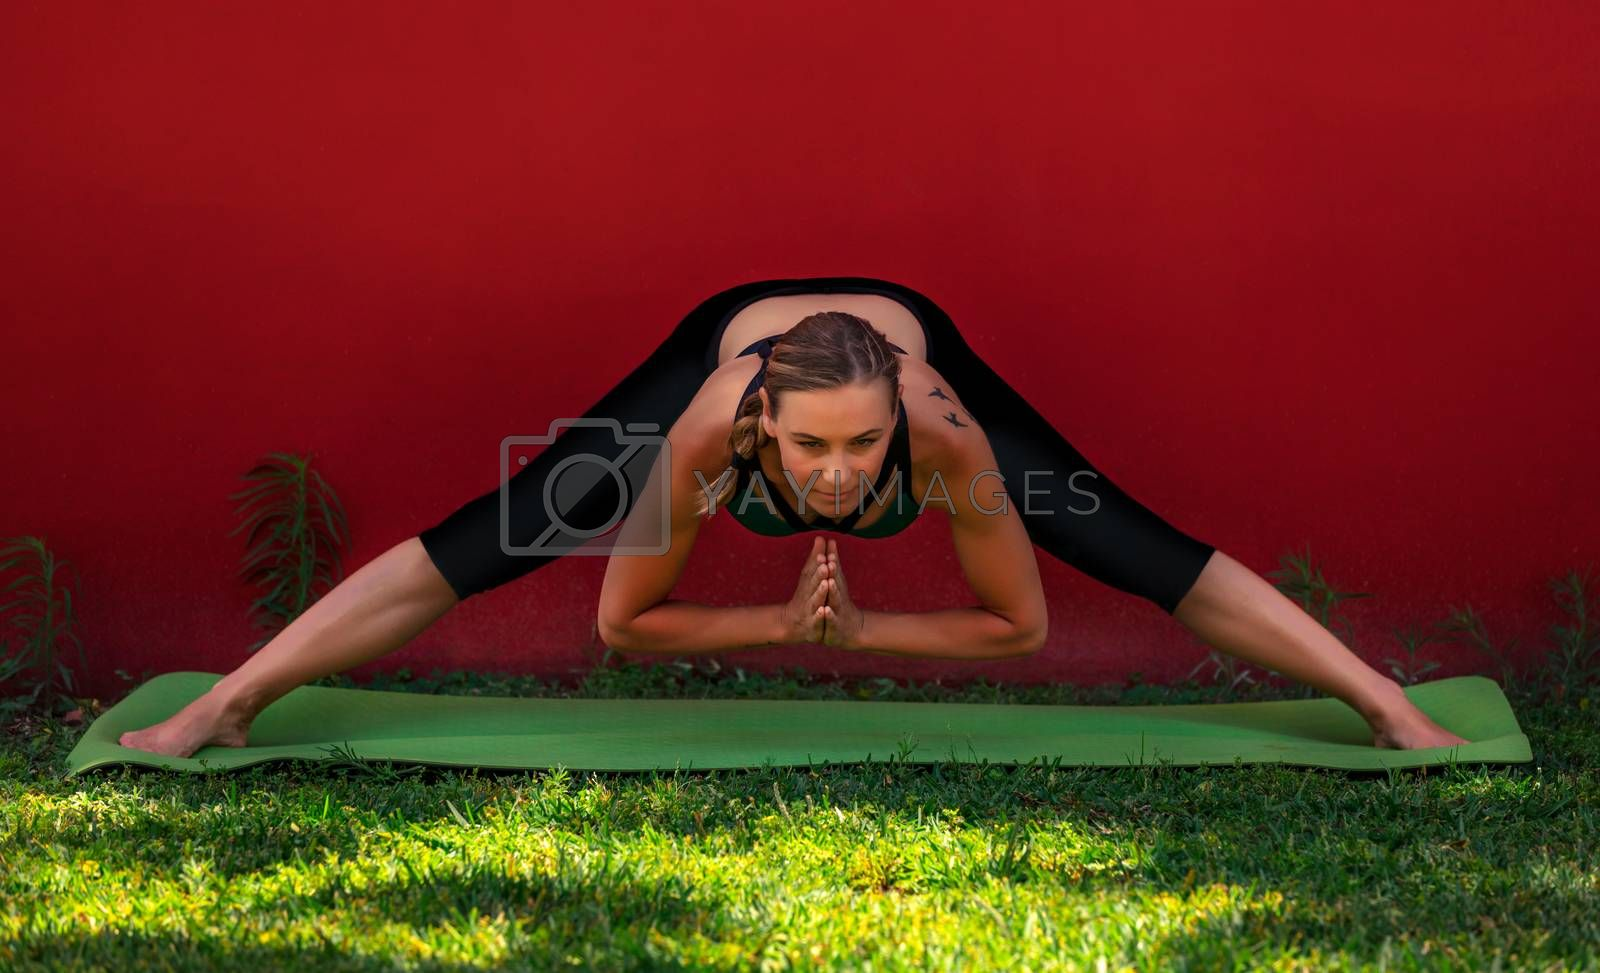 Fit Female Stretching Outdoors. Yoga Practice at the Morning in the Park. Health of Body and Mind. Happy Healthy Lifestyle of Young People. Prasarita Padottanasana. Standing Wide-legged Forward Fold Pose